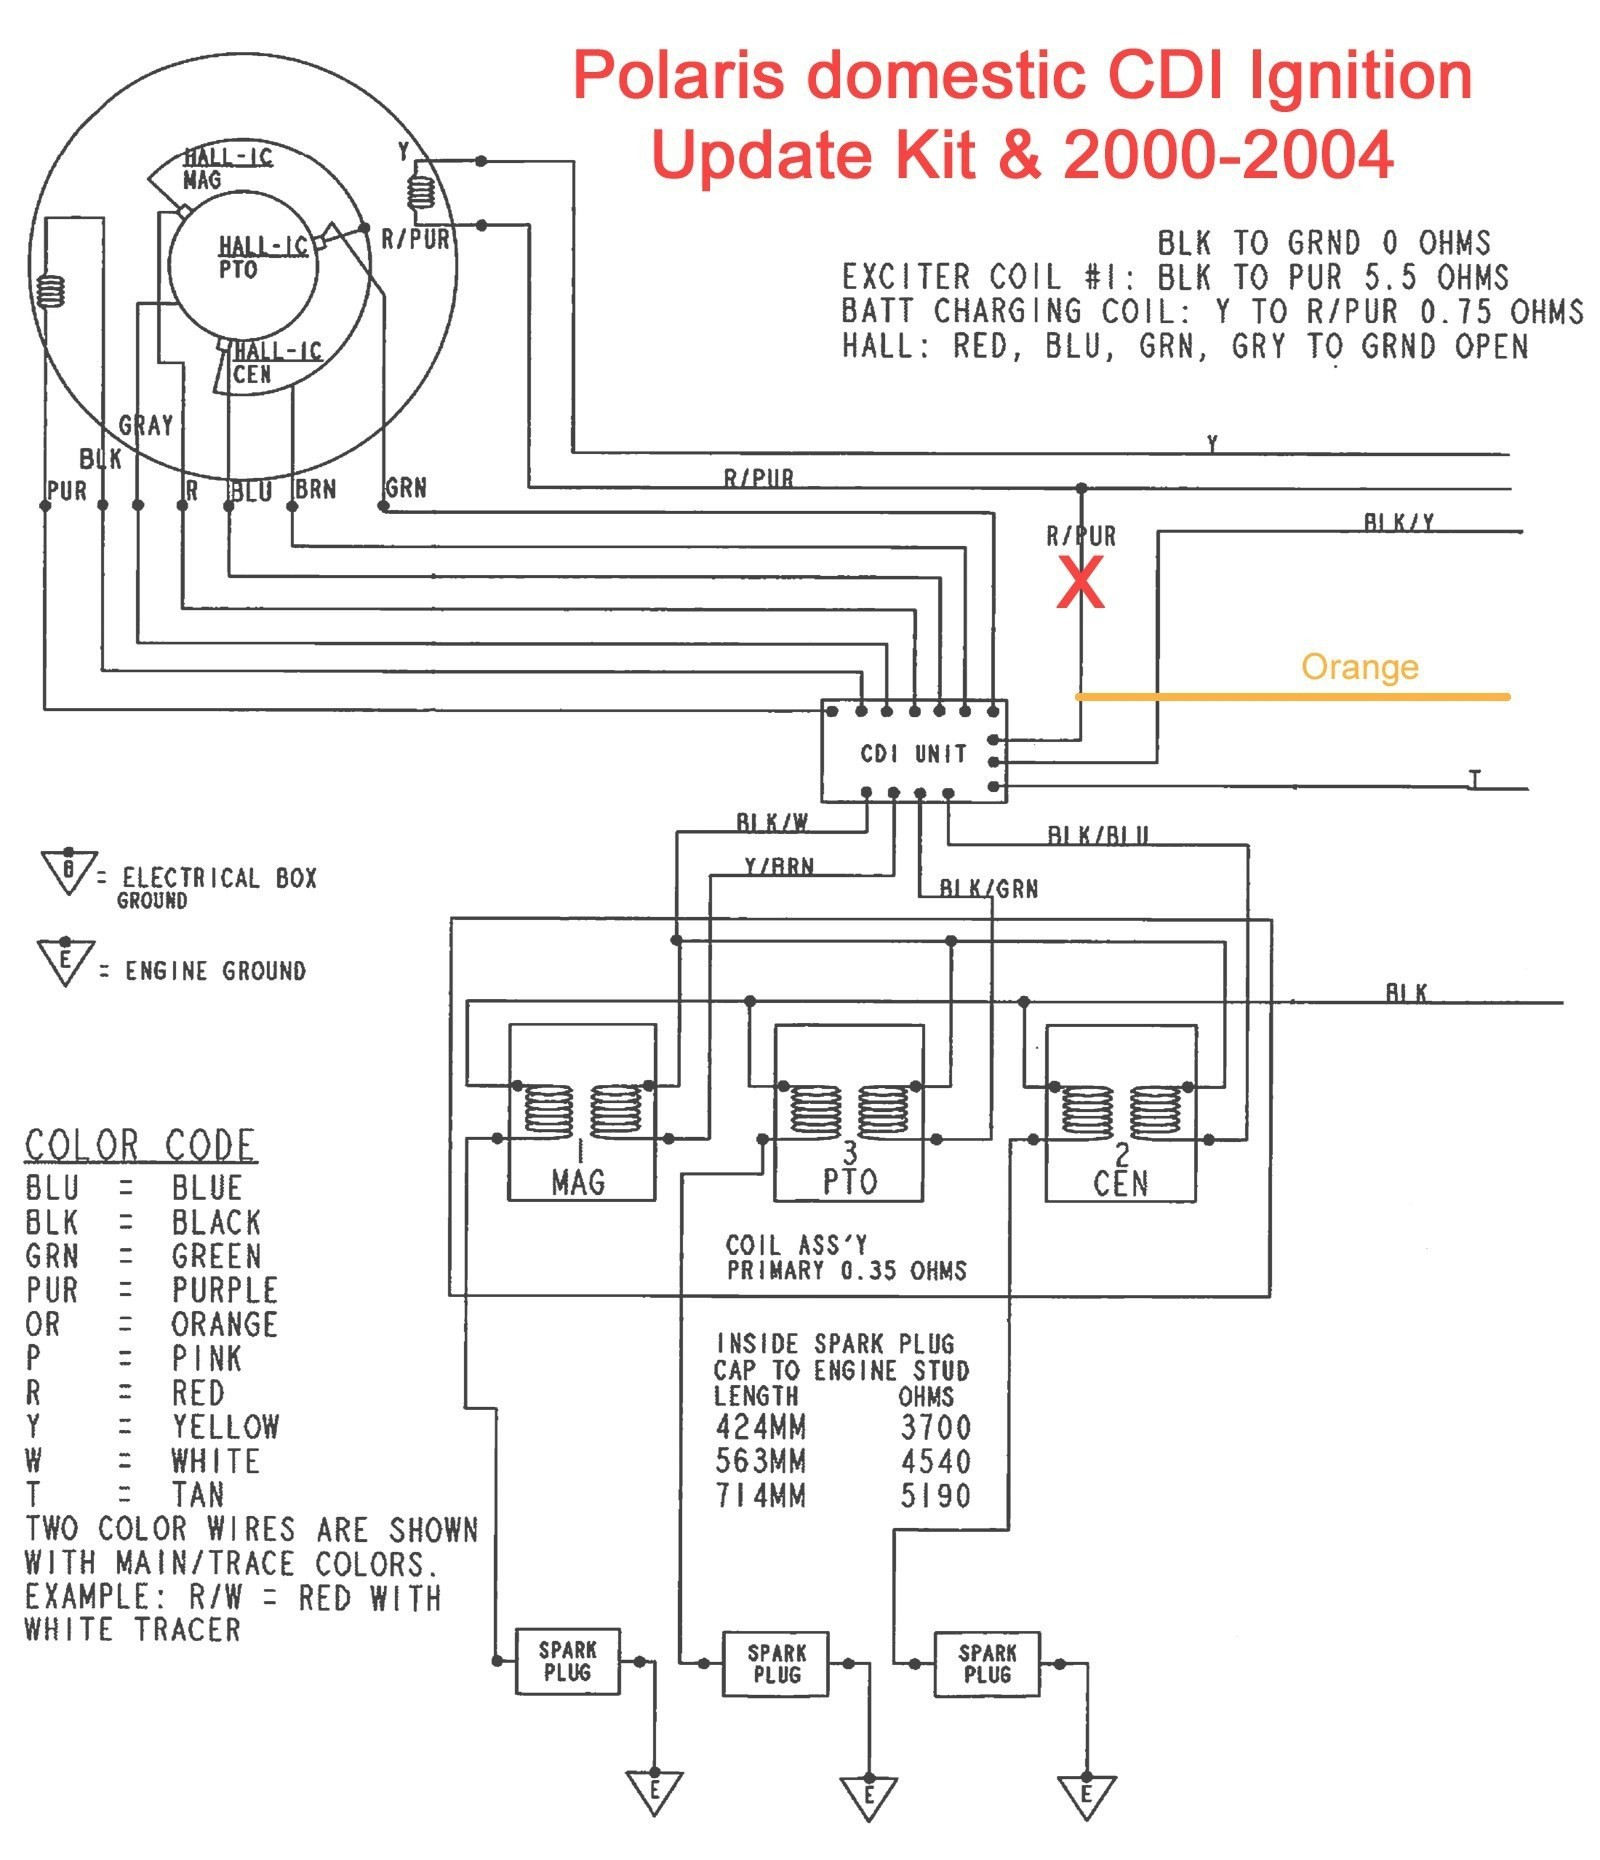 Engine Test Stand Wiring Diagram Awesome Fuel Pump Wiring Harness Diagram Diagram Of Engine Test Stand Wiring Diagram